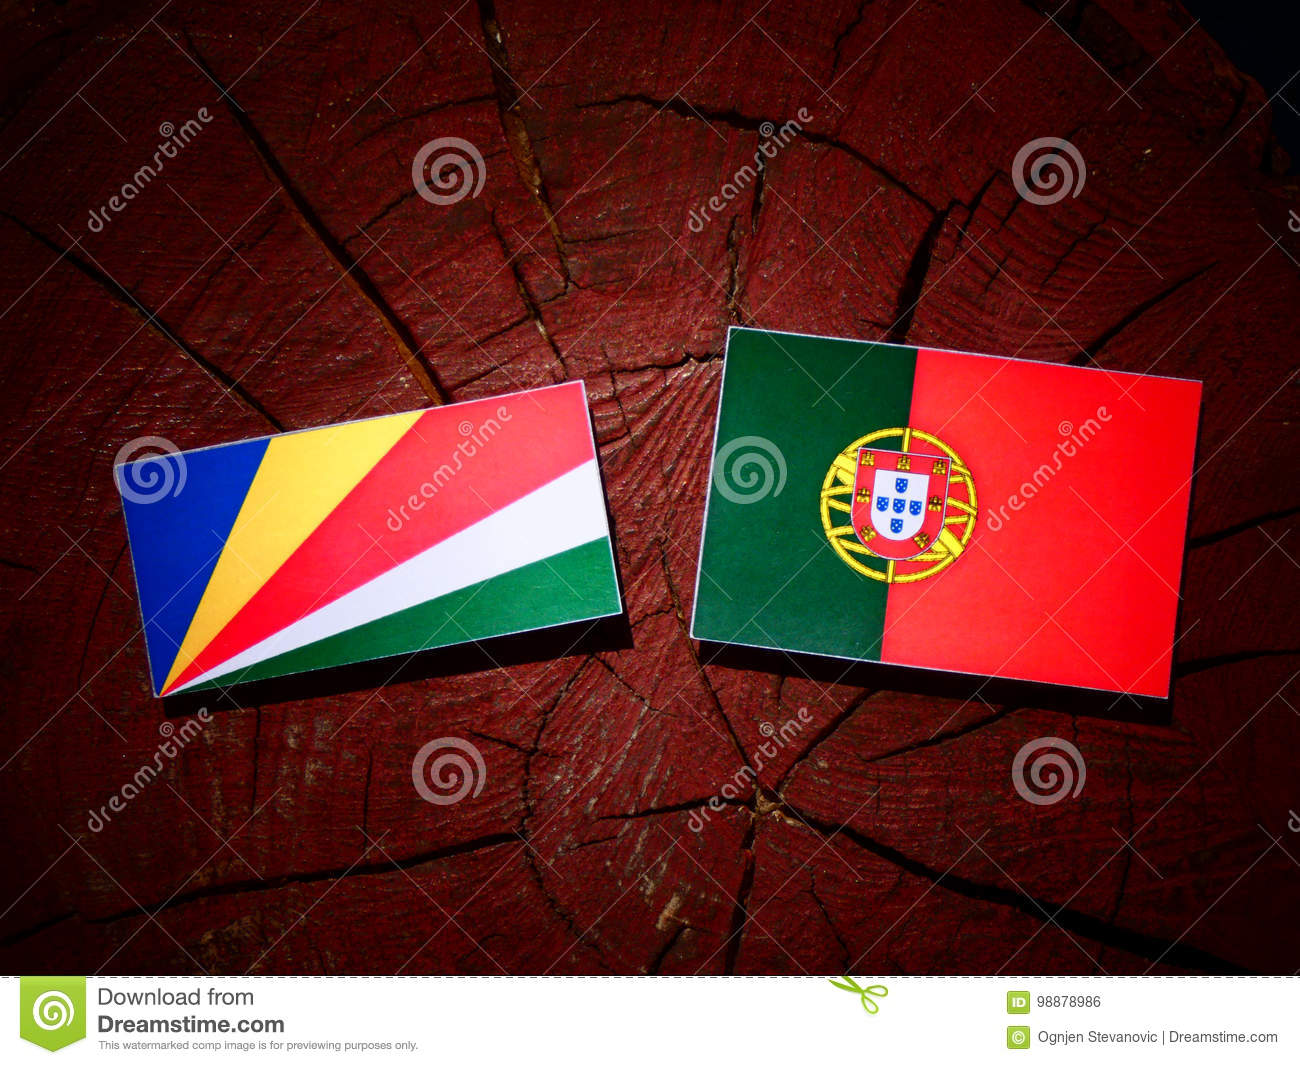 Seychelles flag with Portuguese flag on a tree stump isolated